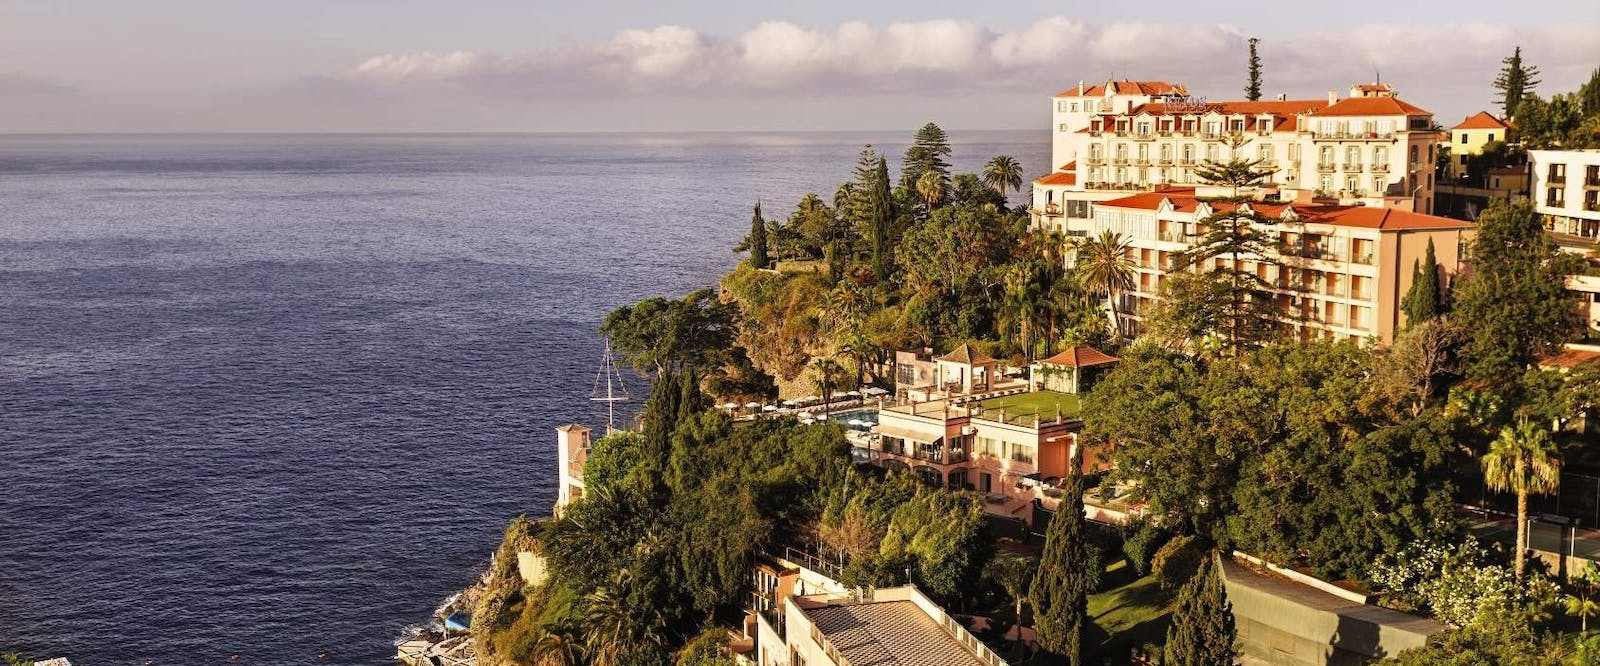 Exterior of Reid's Palace, A Belmond Hotel, Madeira, Portugal